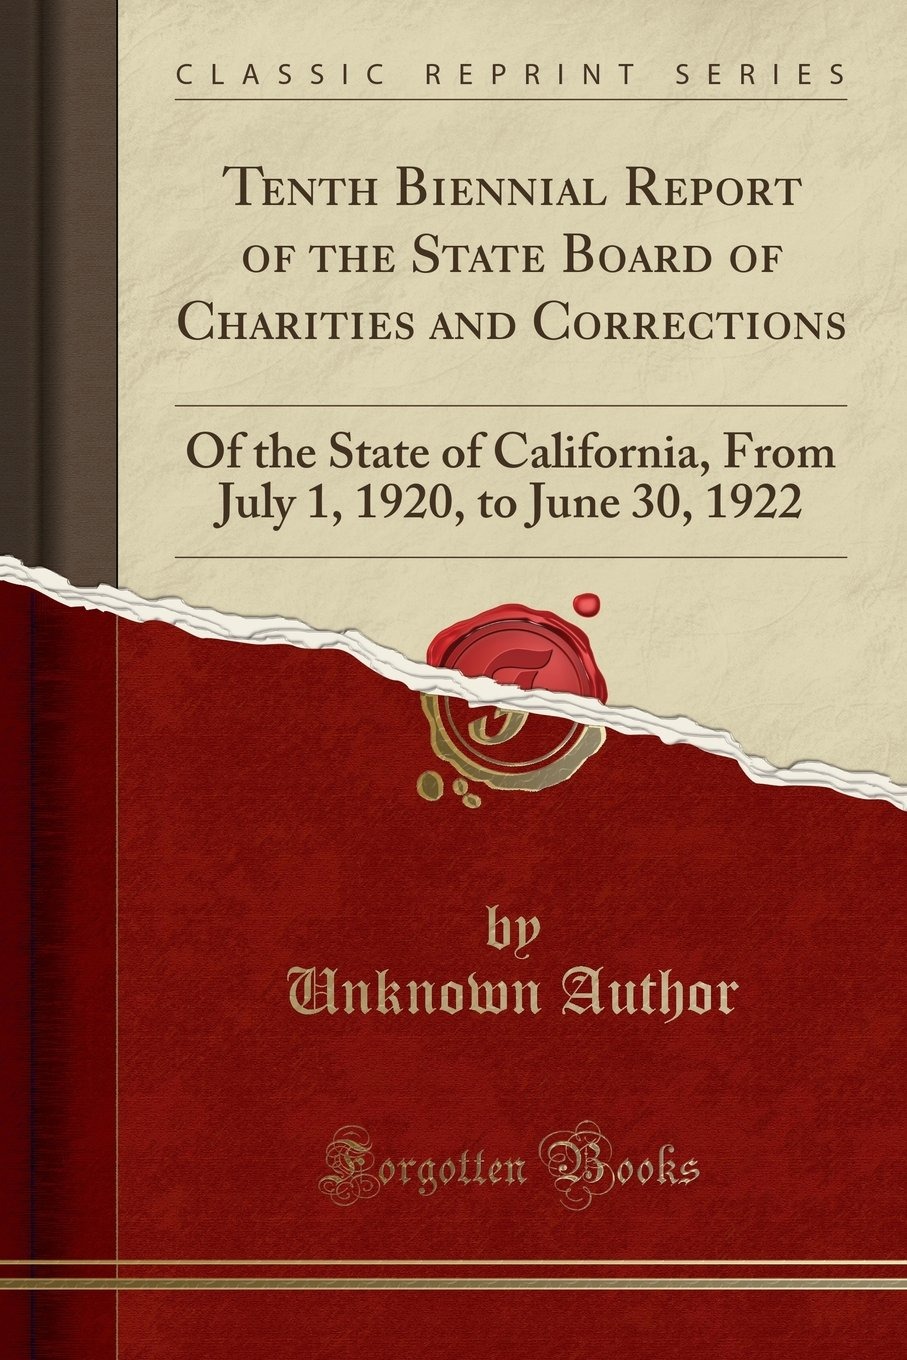 Read Online Tenth Biennial Report of the State Board of Charities and Corrections: Of the State of California, From July 1, 1920, to June 30, 1922 (Classic Reprint) pdf epub